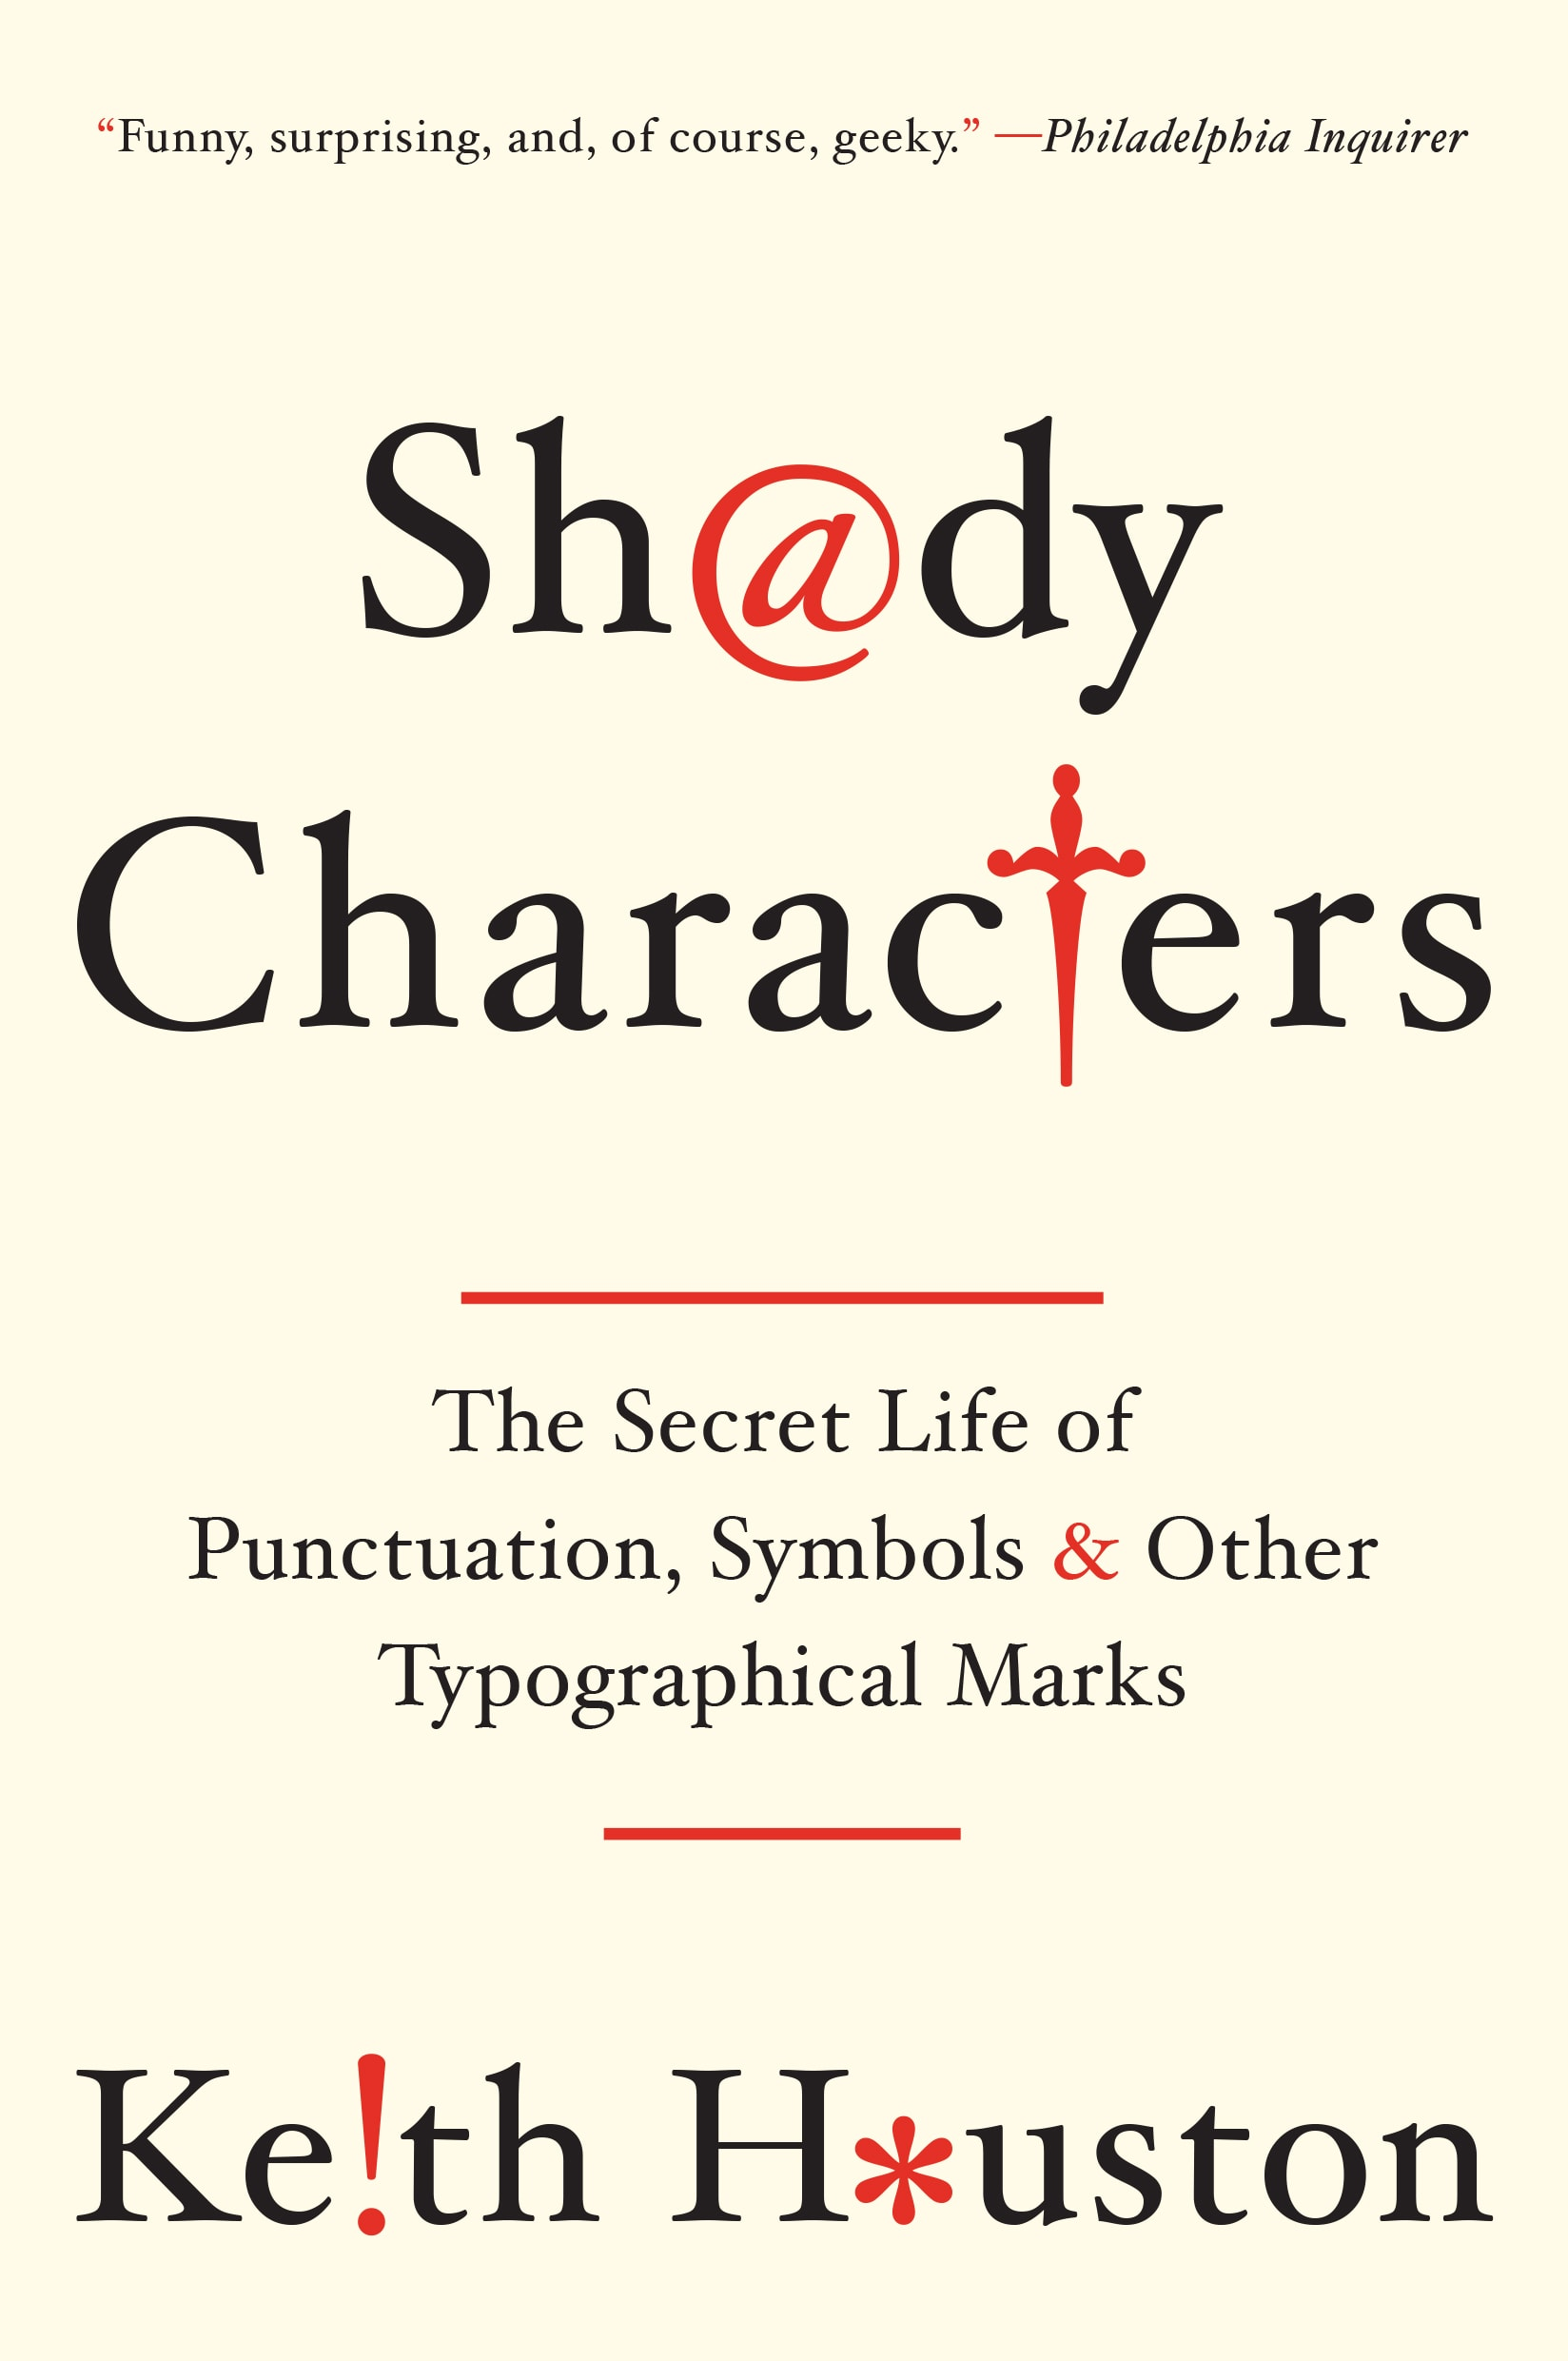 Shady Characters paperback (W. W. Norton., 2014).